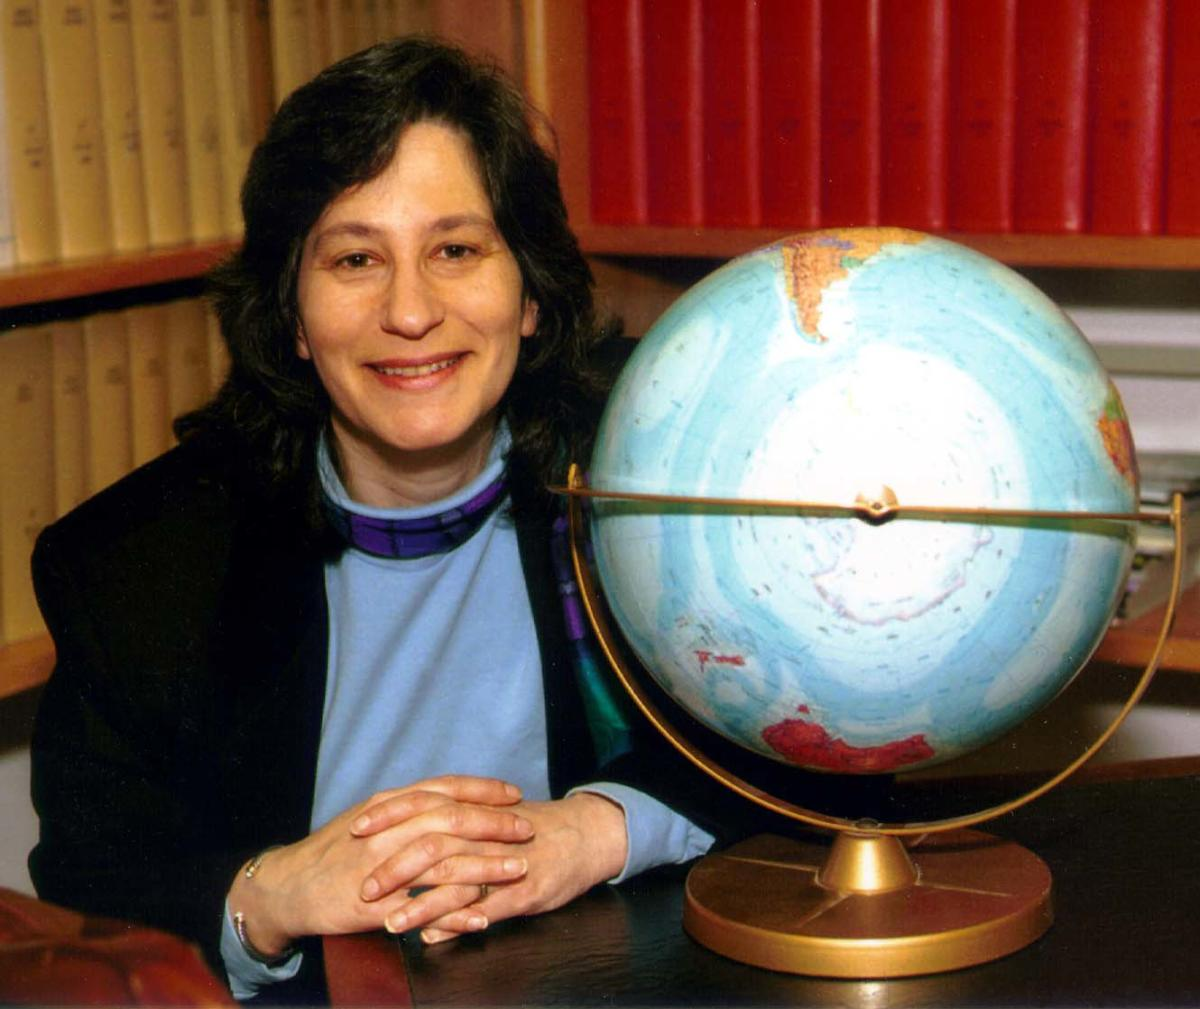 Head shot of Susan Solomon sitting next to a globe